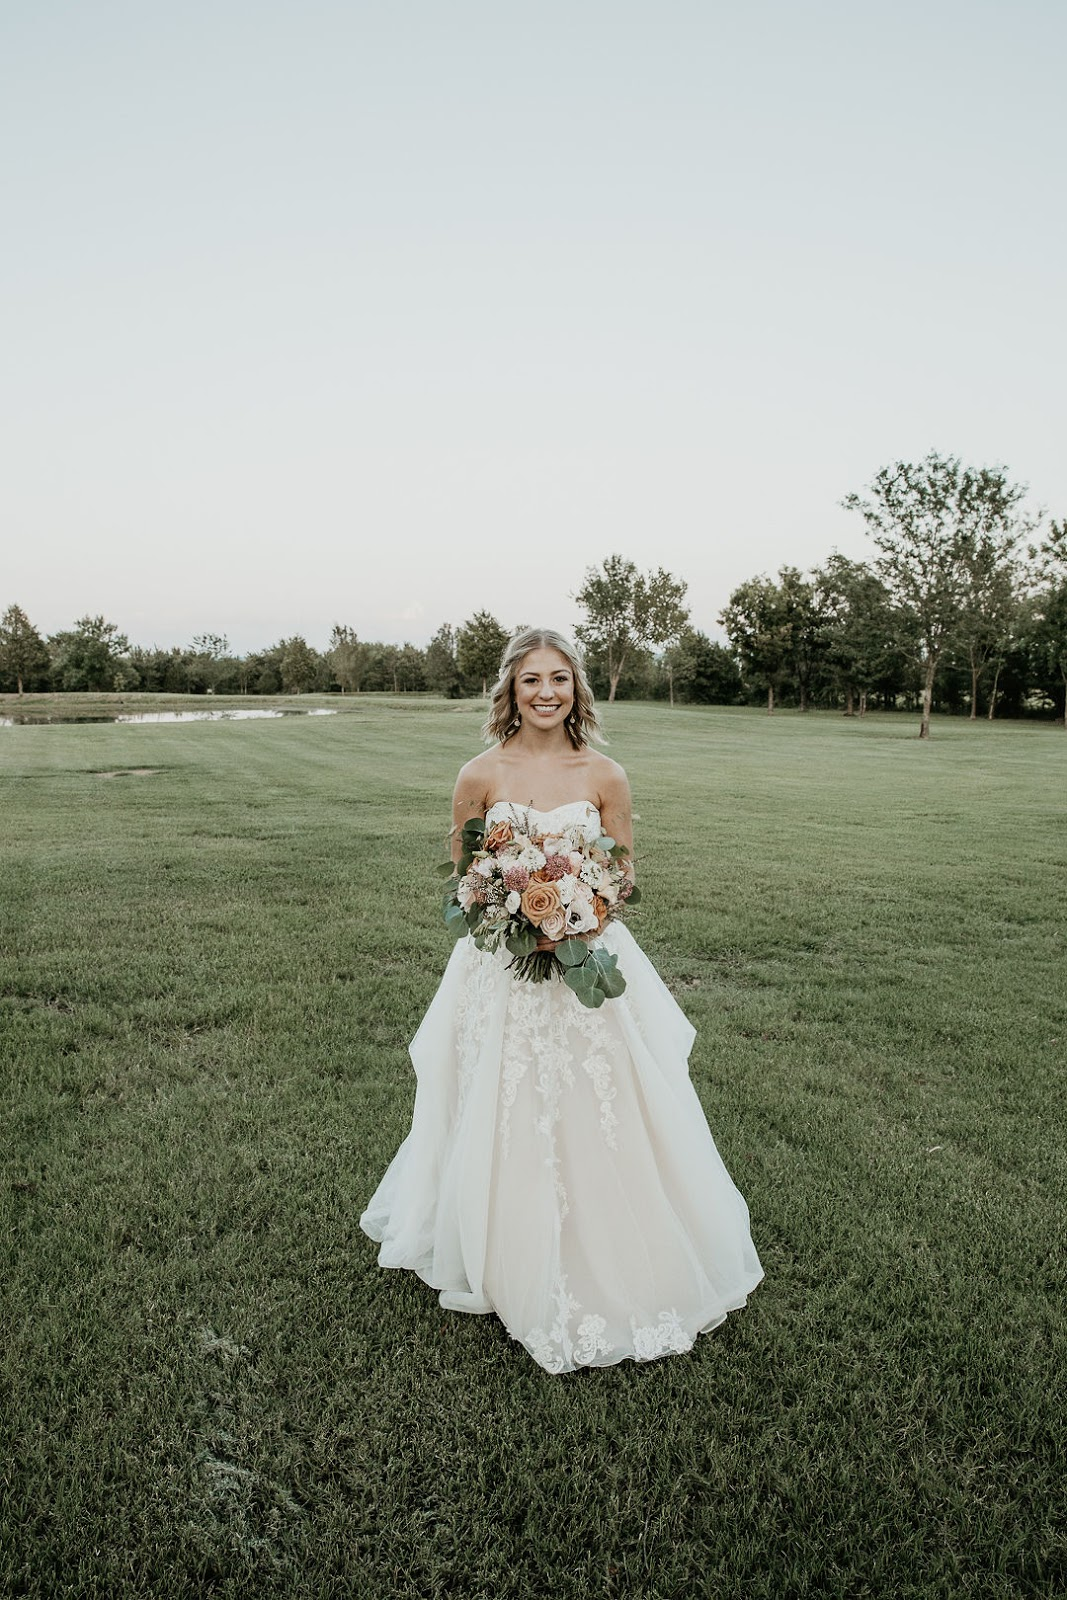 Solo image of bride in dress holding bouquet